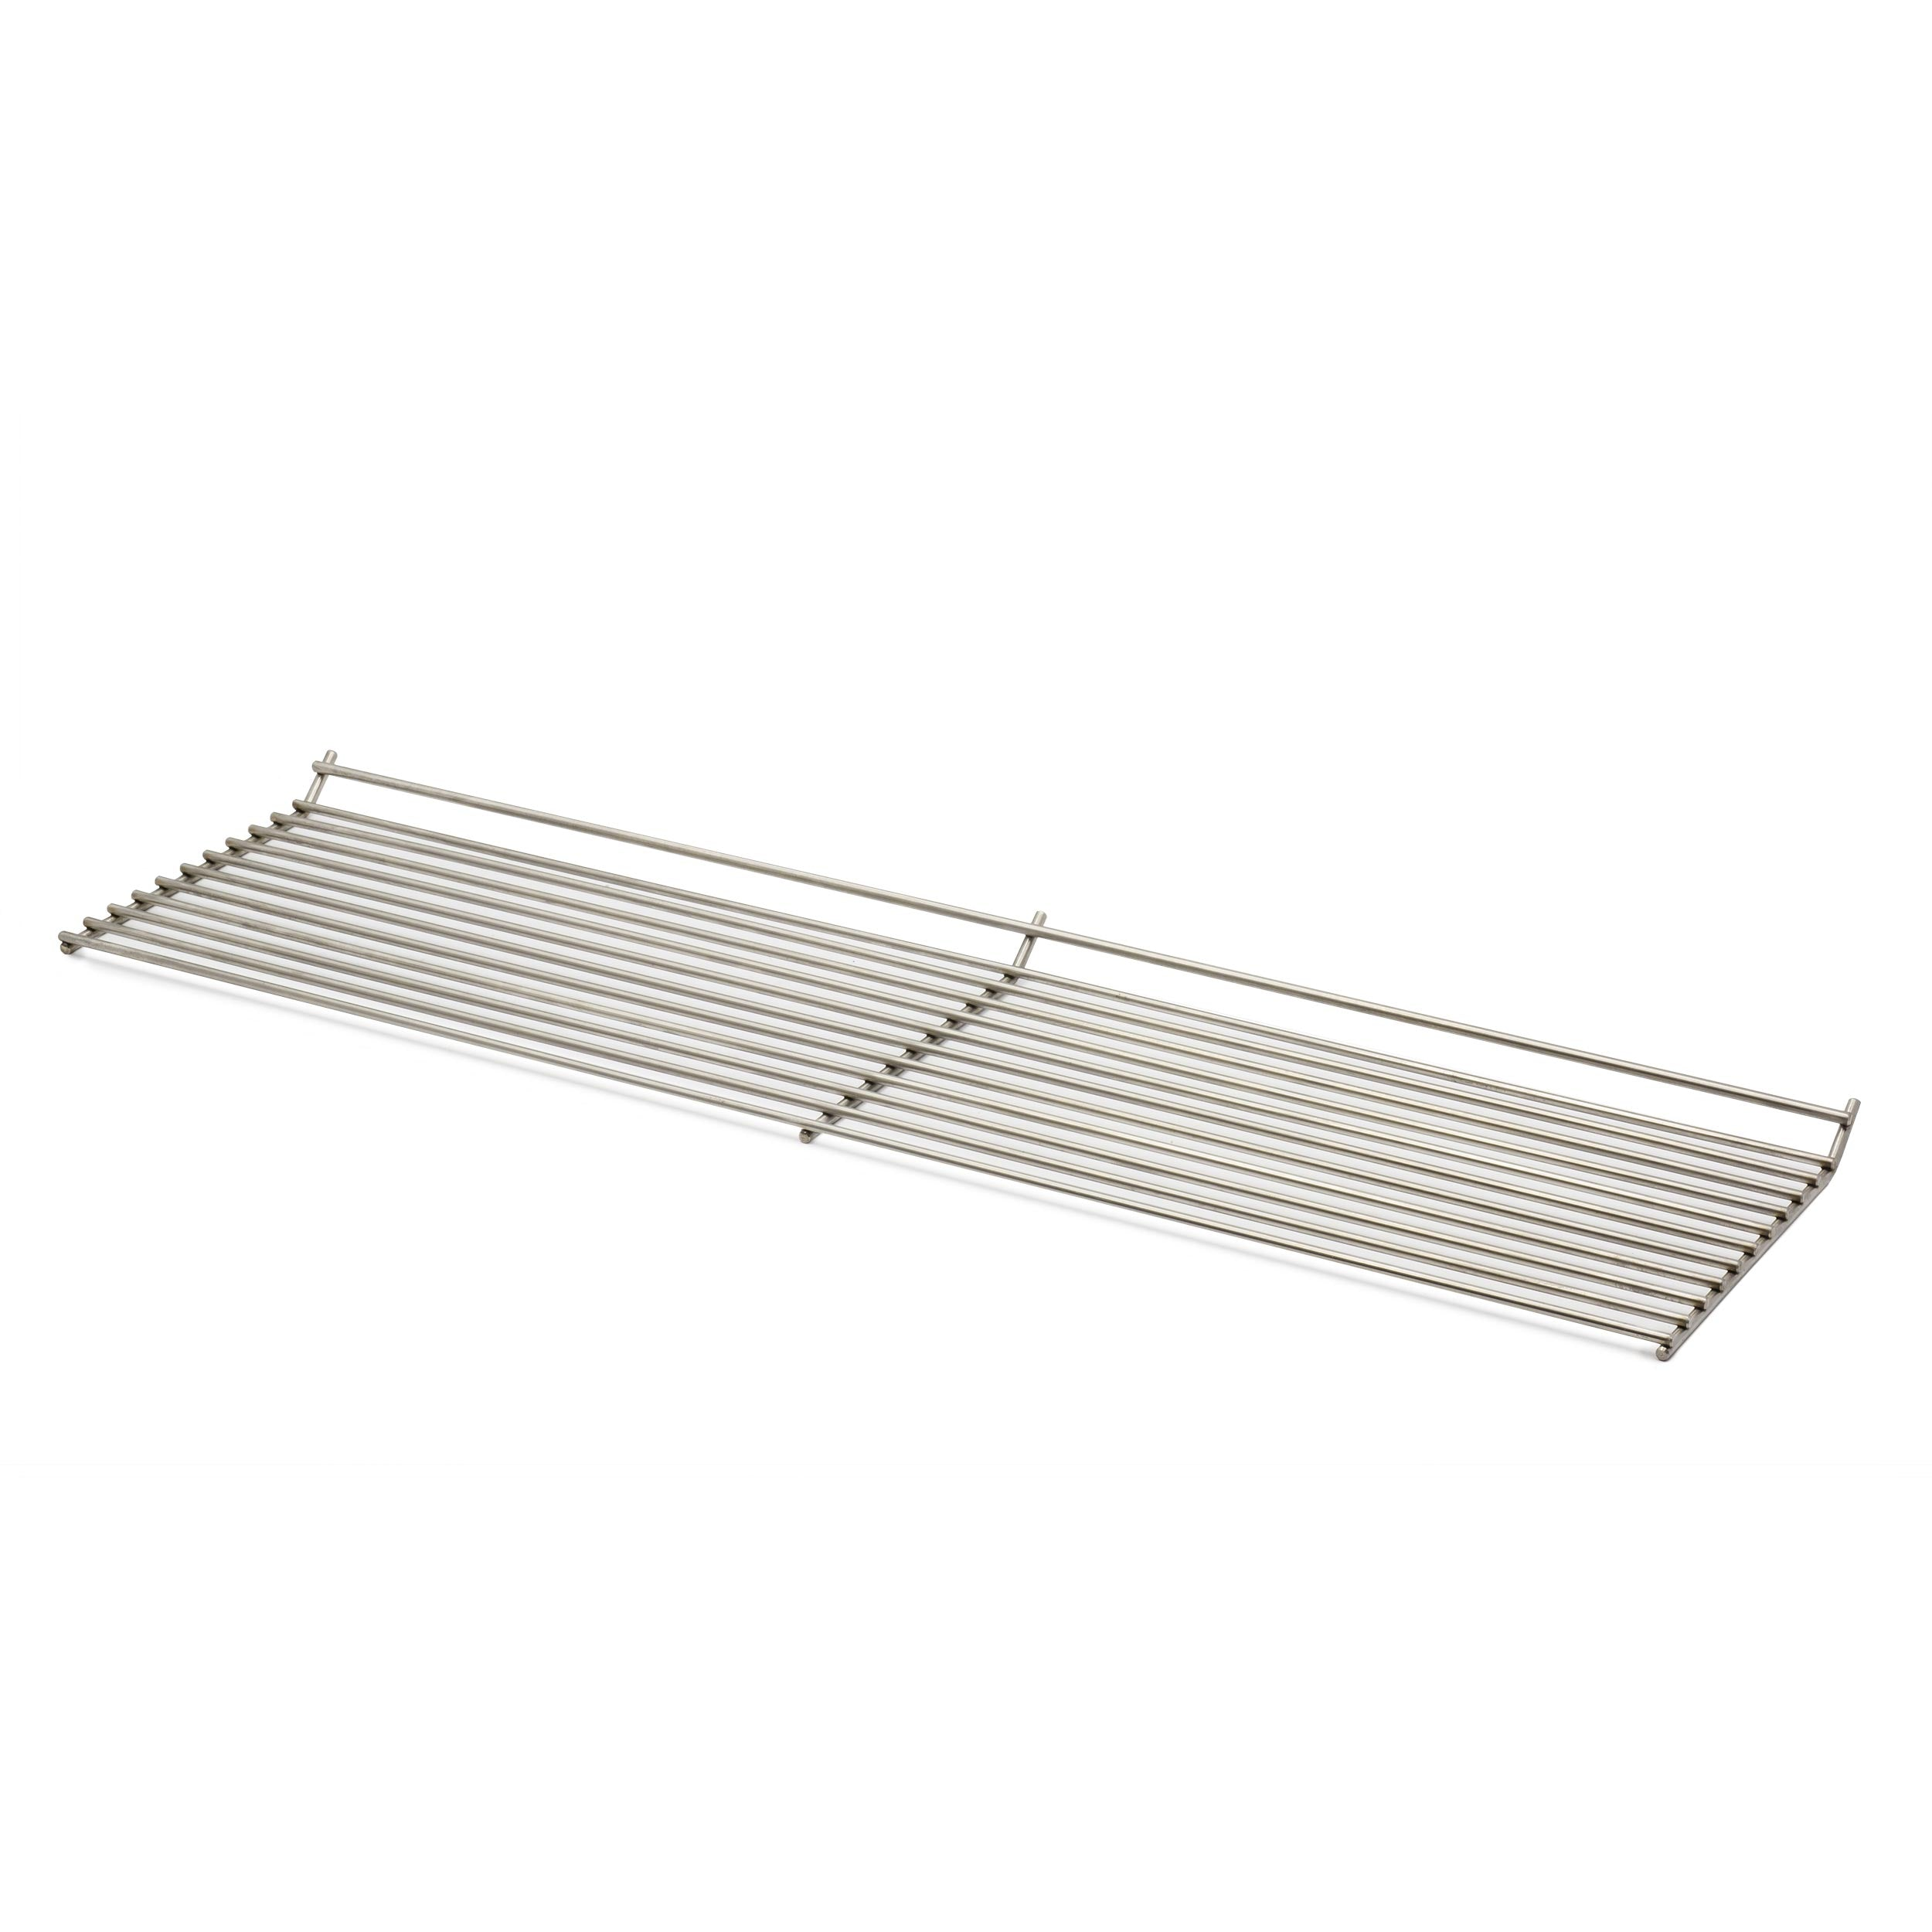 "Summerset TRLD44 Warming Rack  (8 1/4"" x 42"") - BBQ Fix"